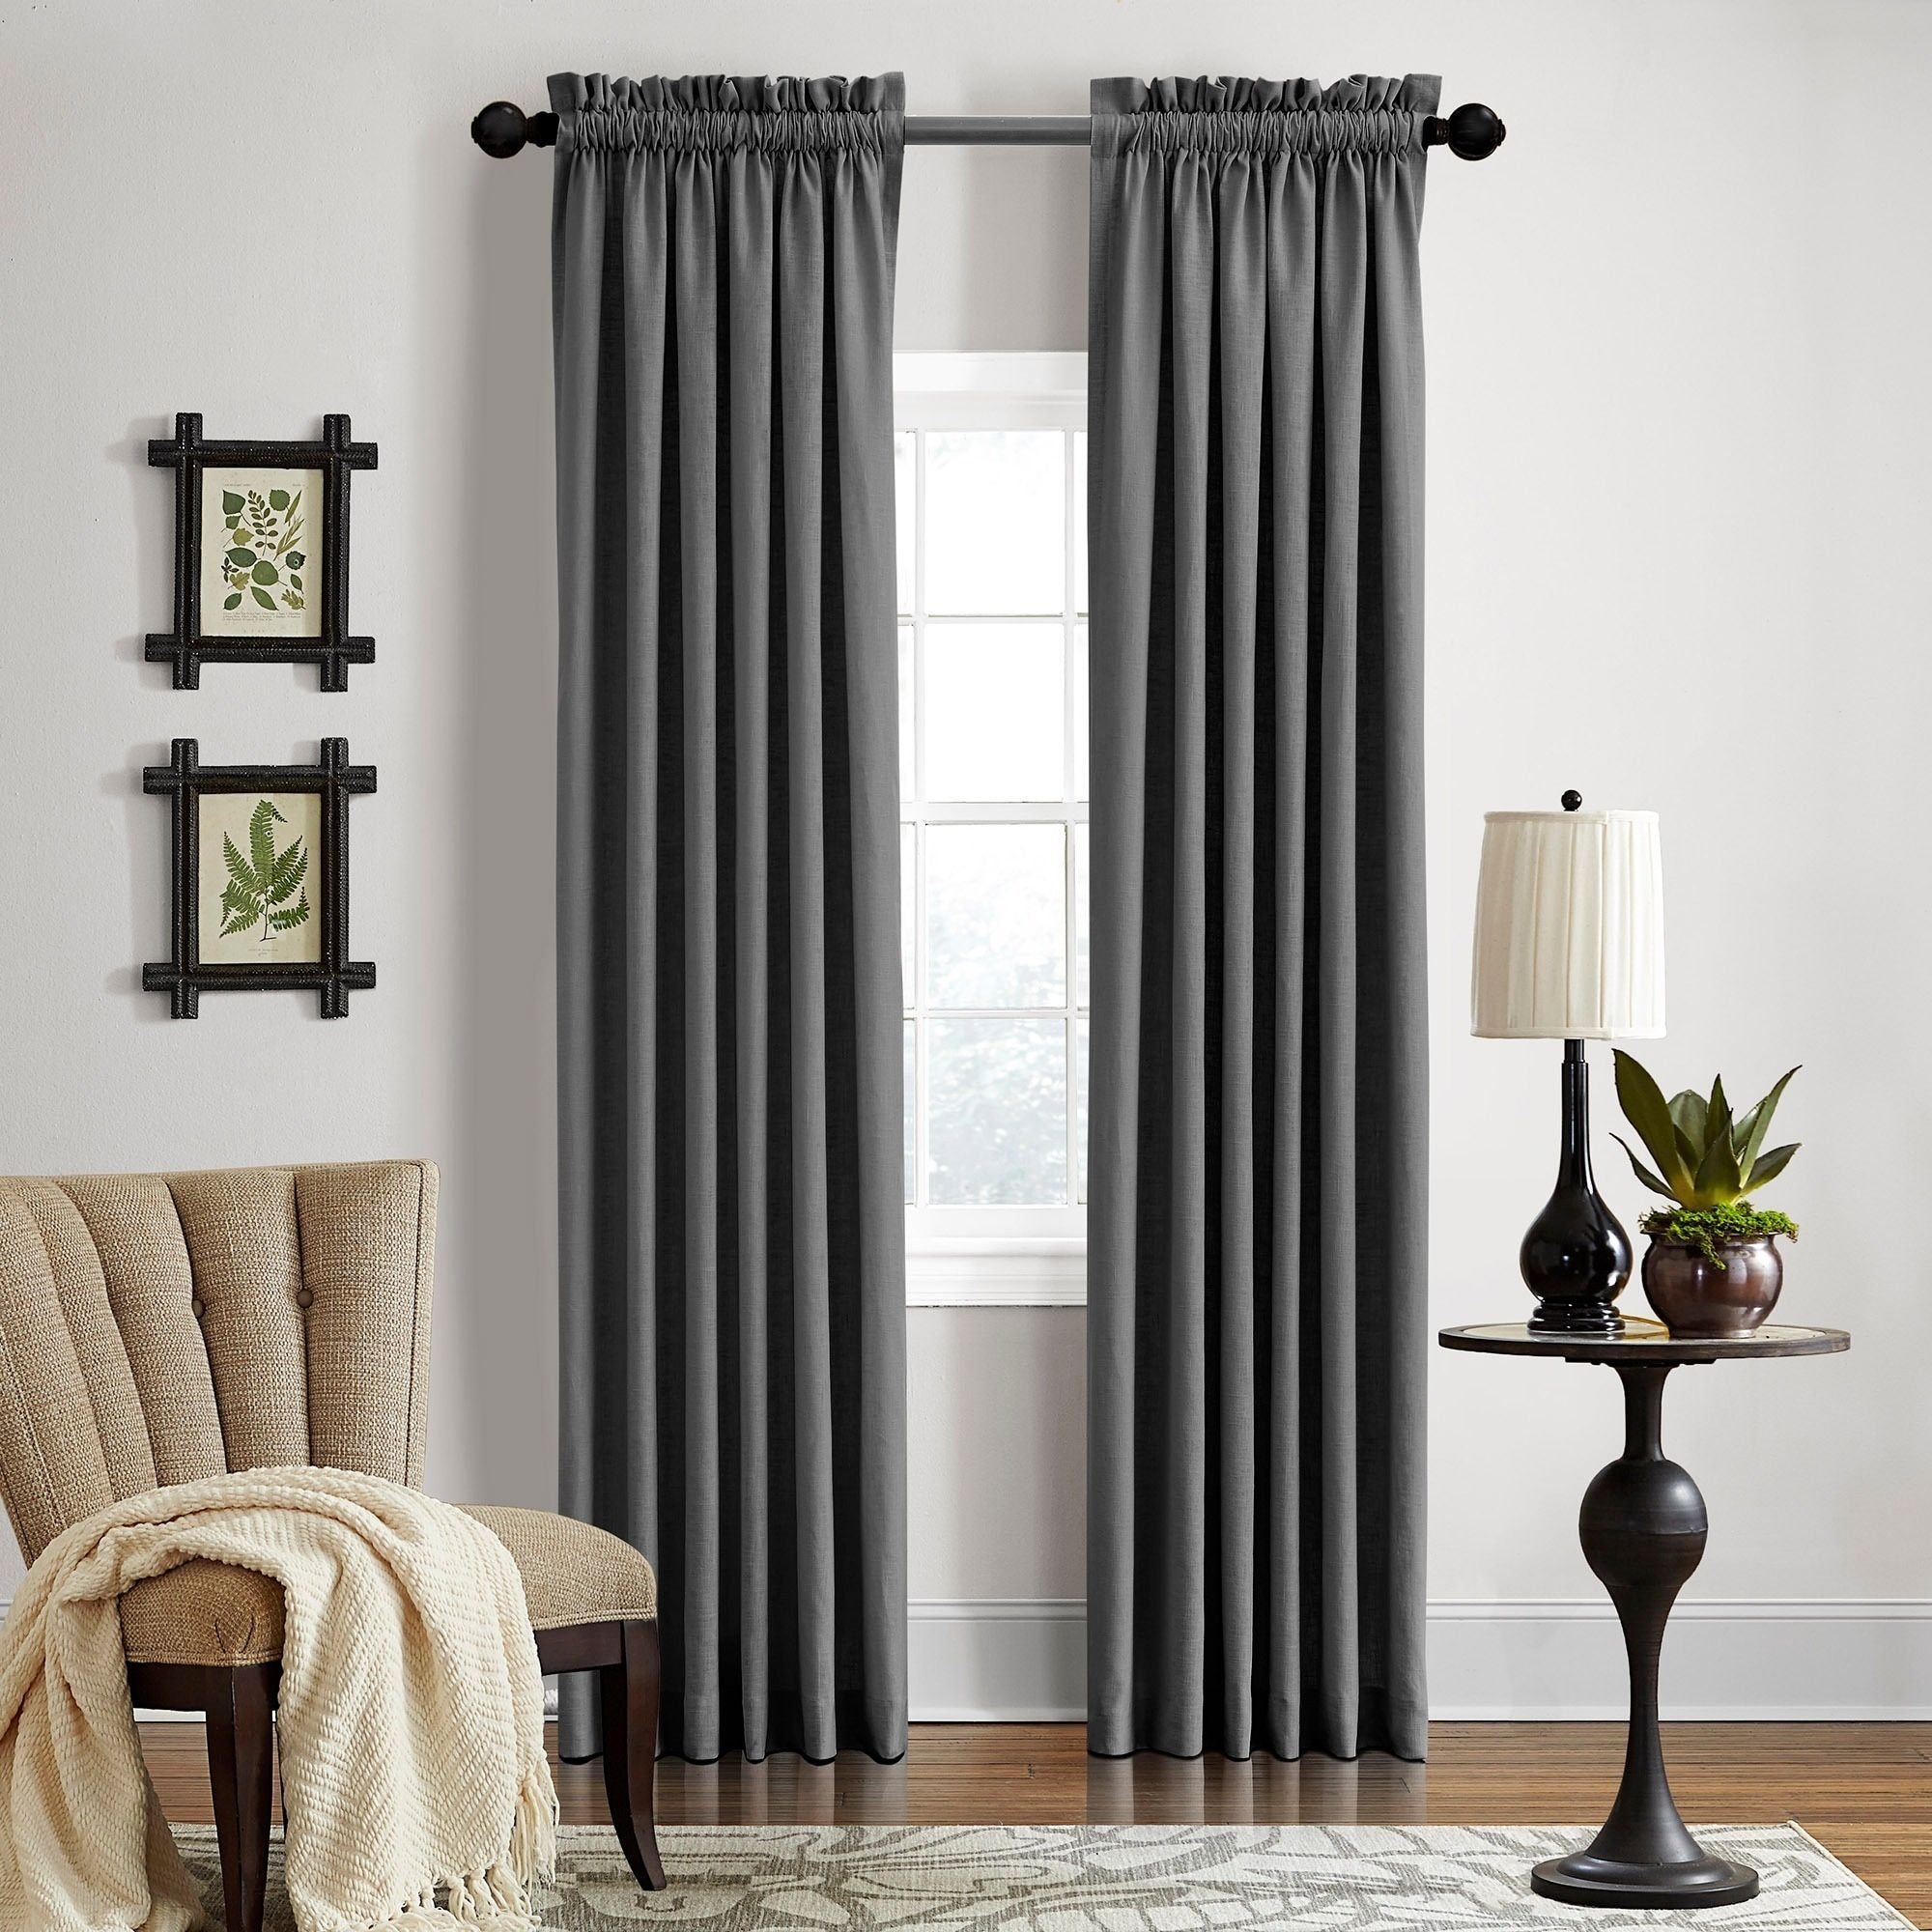 size rod curtain grand pin linen curtains veratex pocket gotham white luxe panel inch optical